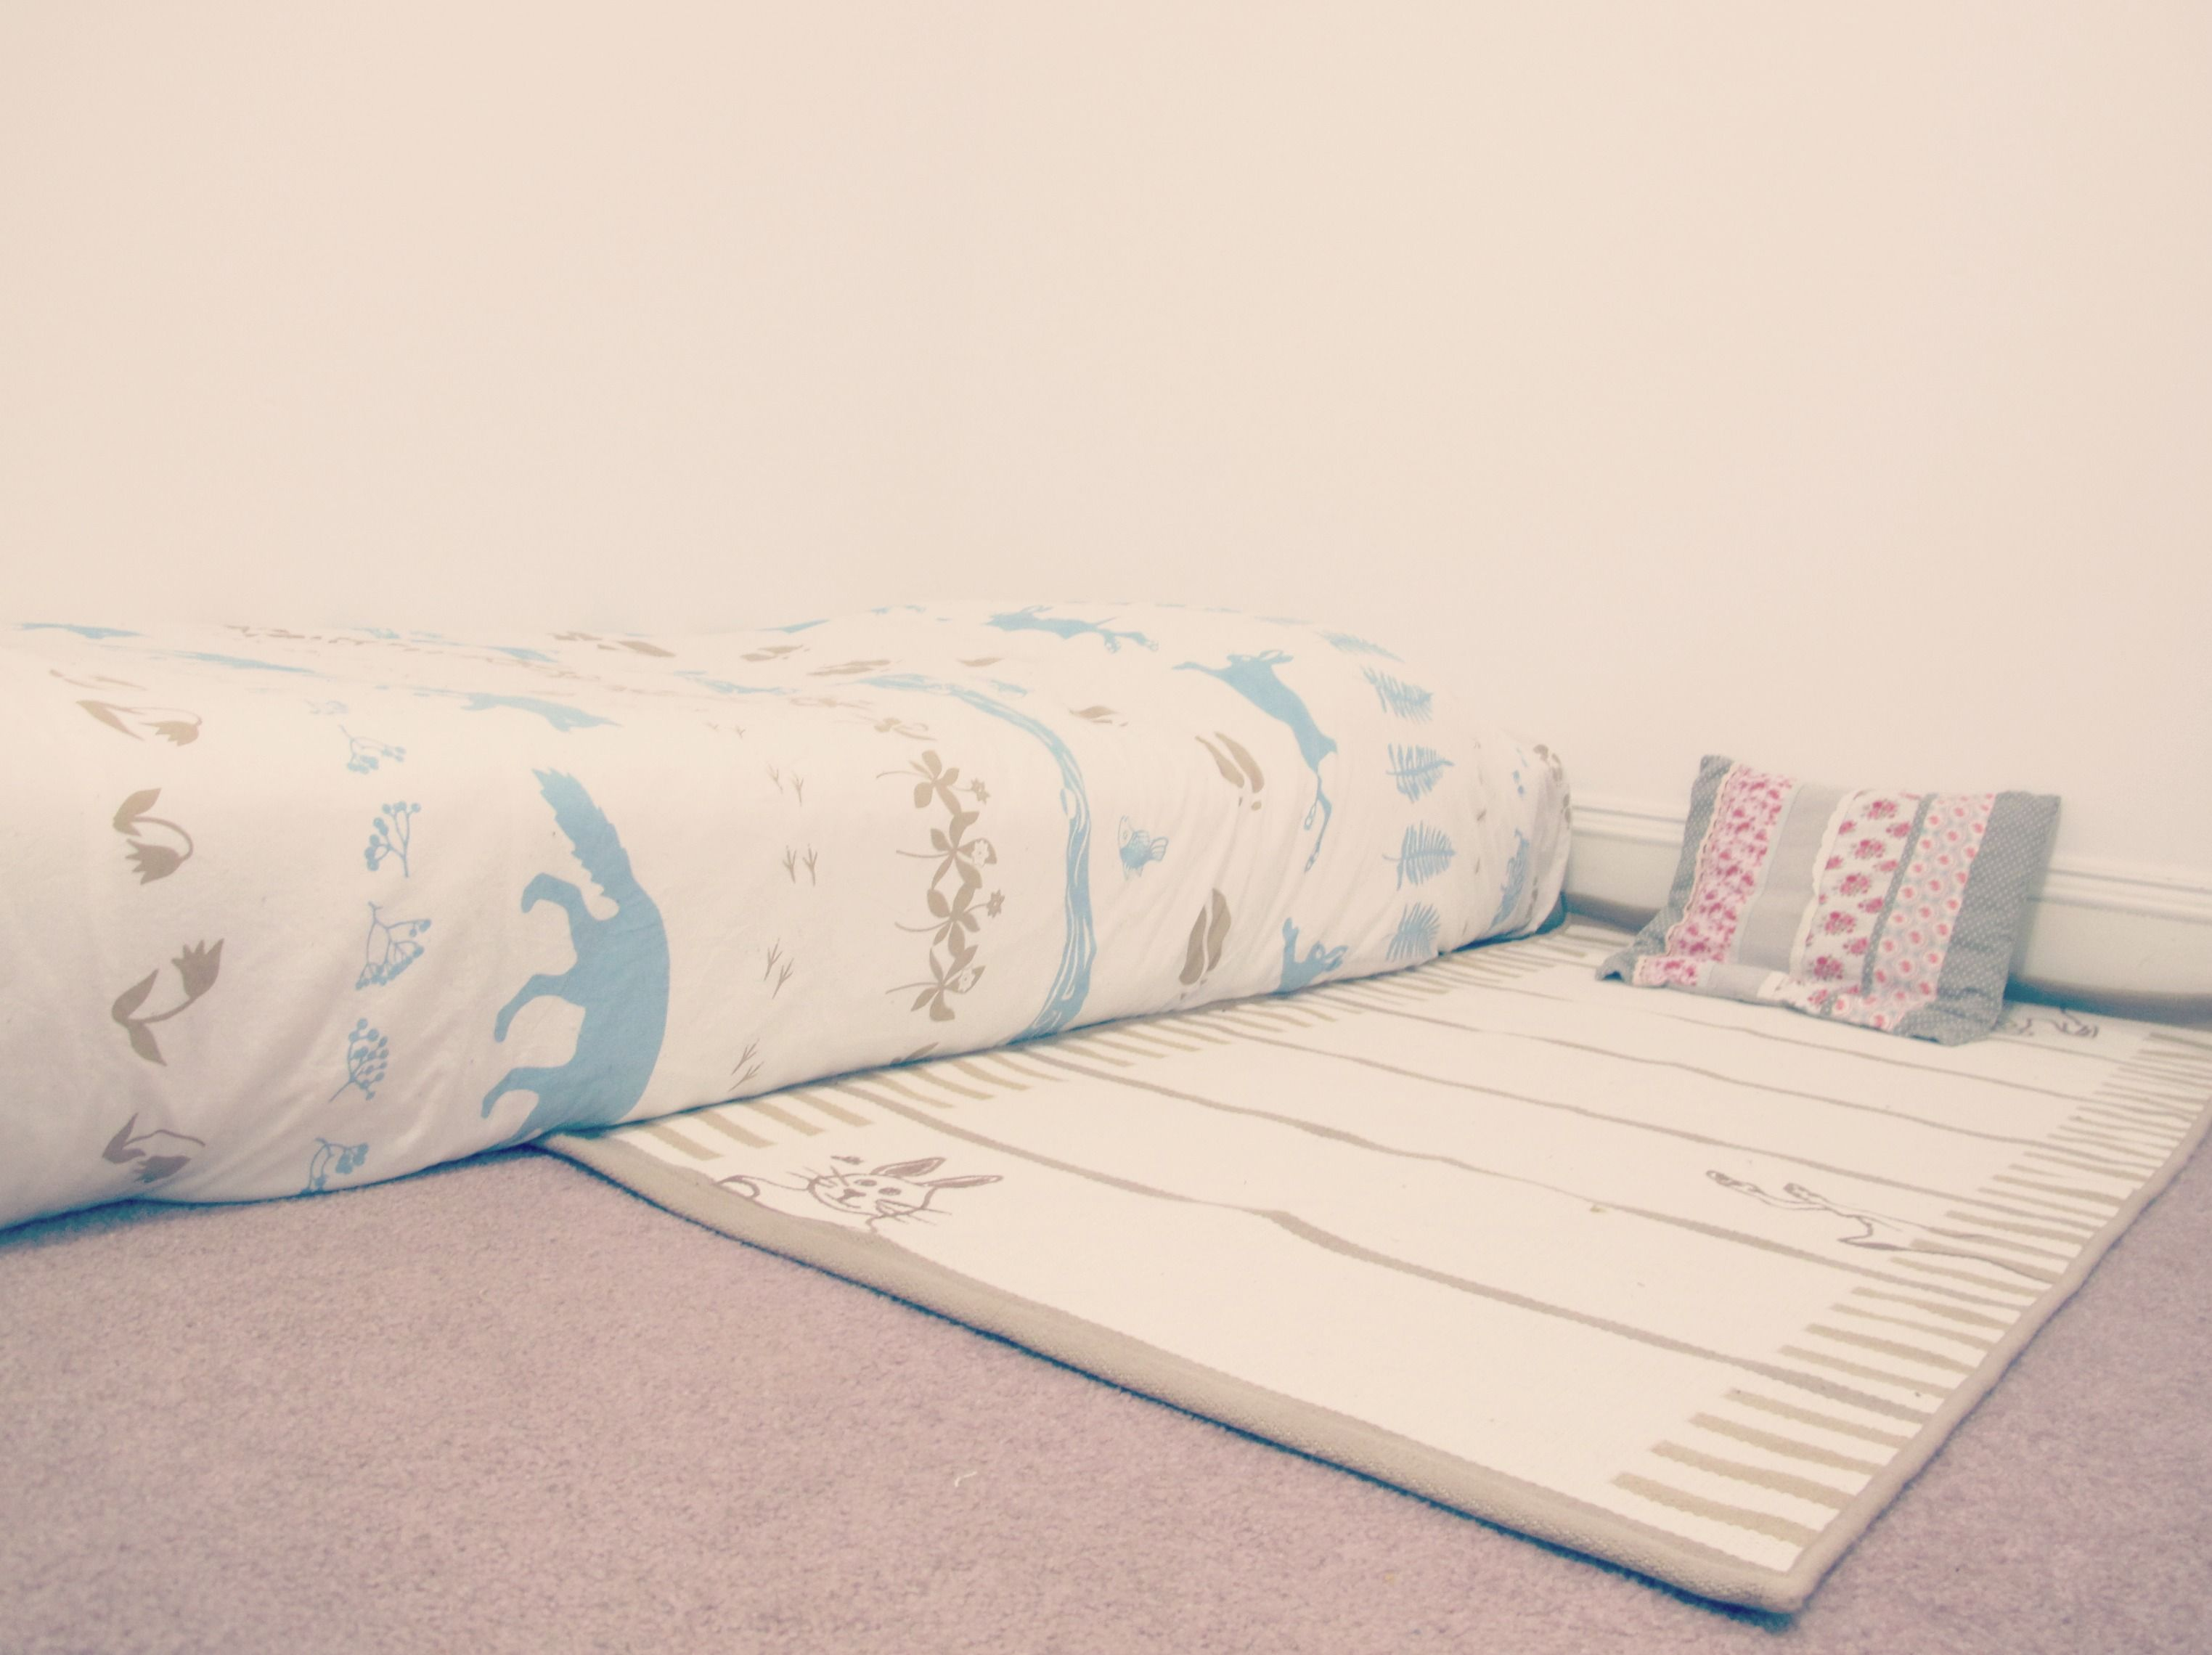 montessori inspired floor beds eases the transition from bed sharing to night beds or rooms eliminates the transition from the crib to